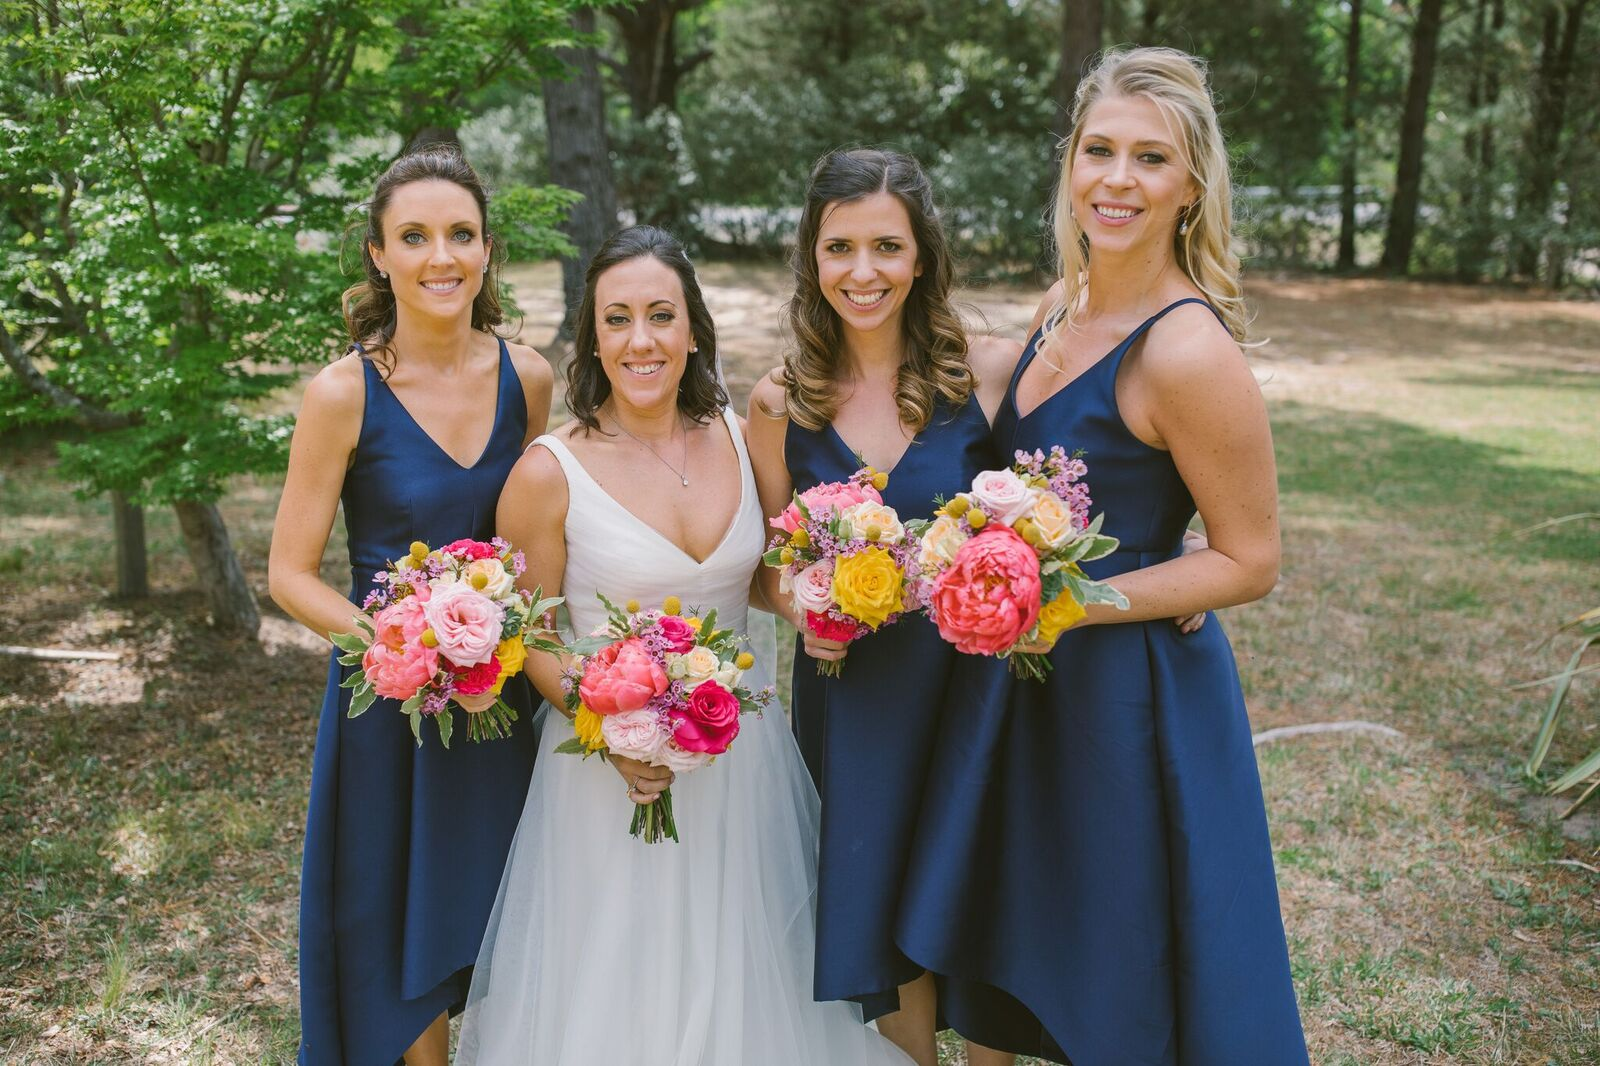 Bride and Bridesmaids holding bright pink and yellow flowers